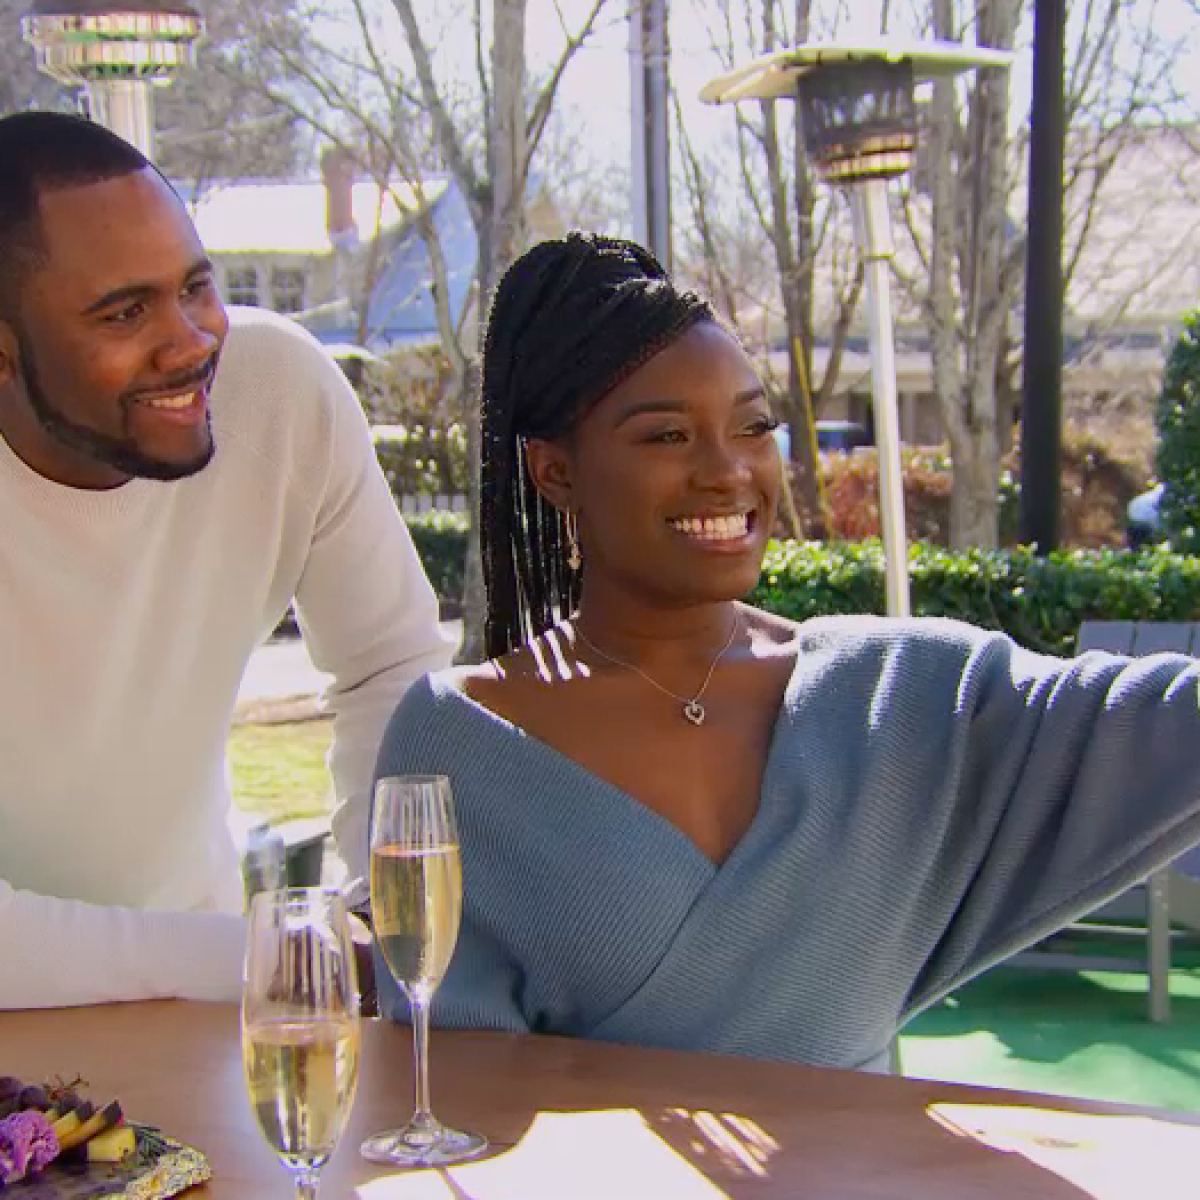 Exclusive: Watch Paige Banks Go On Her First Date Following 'Married At First Sight'